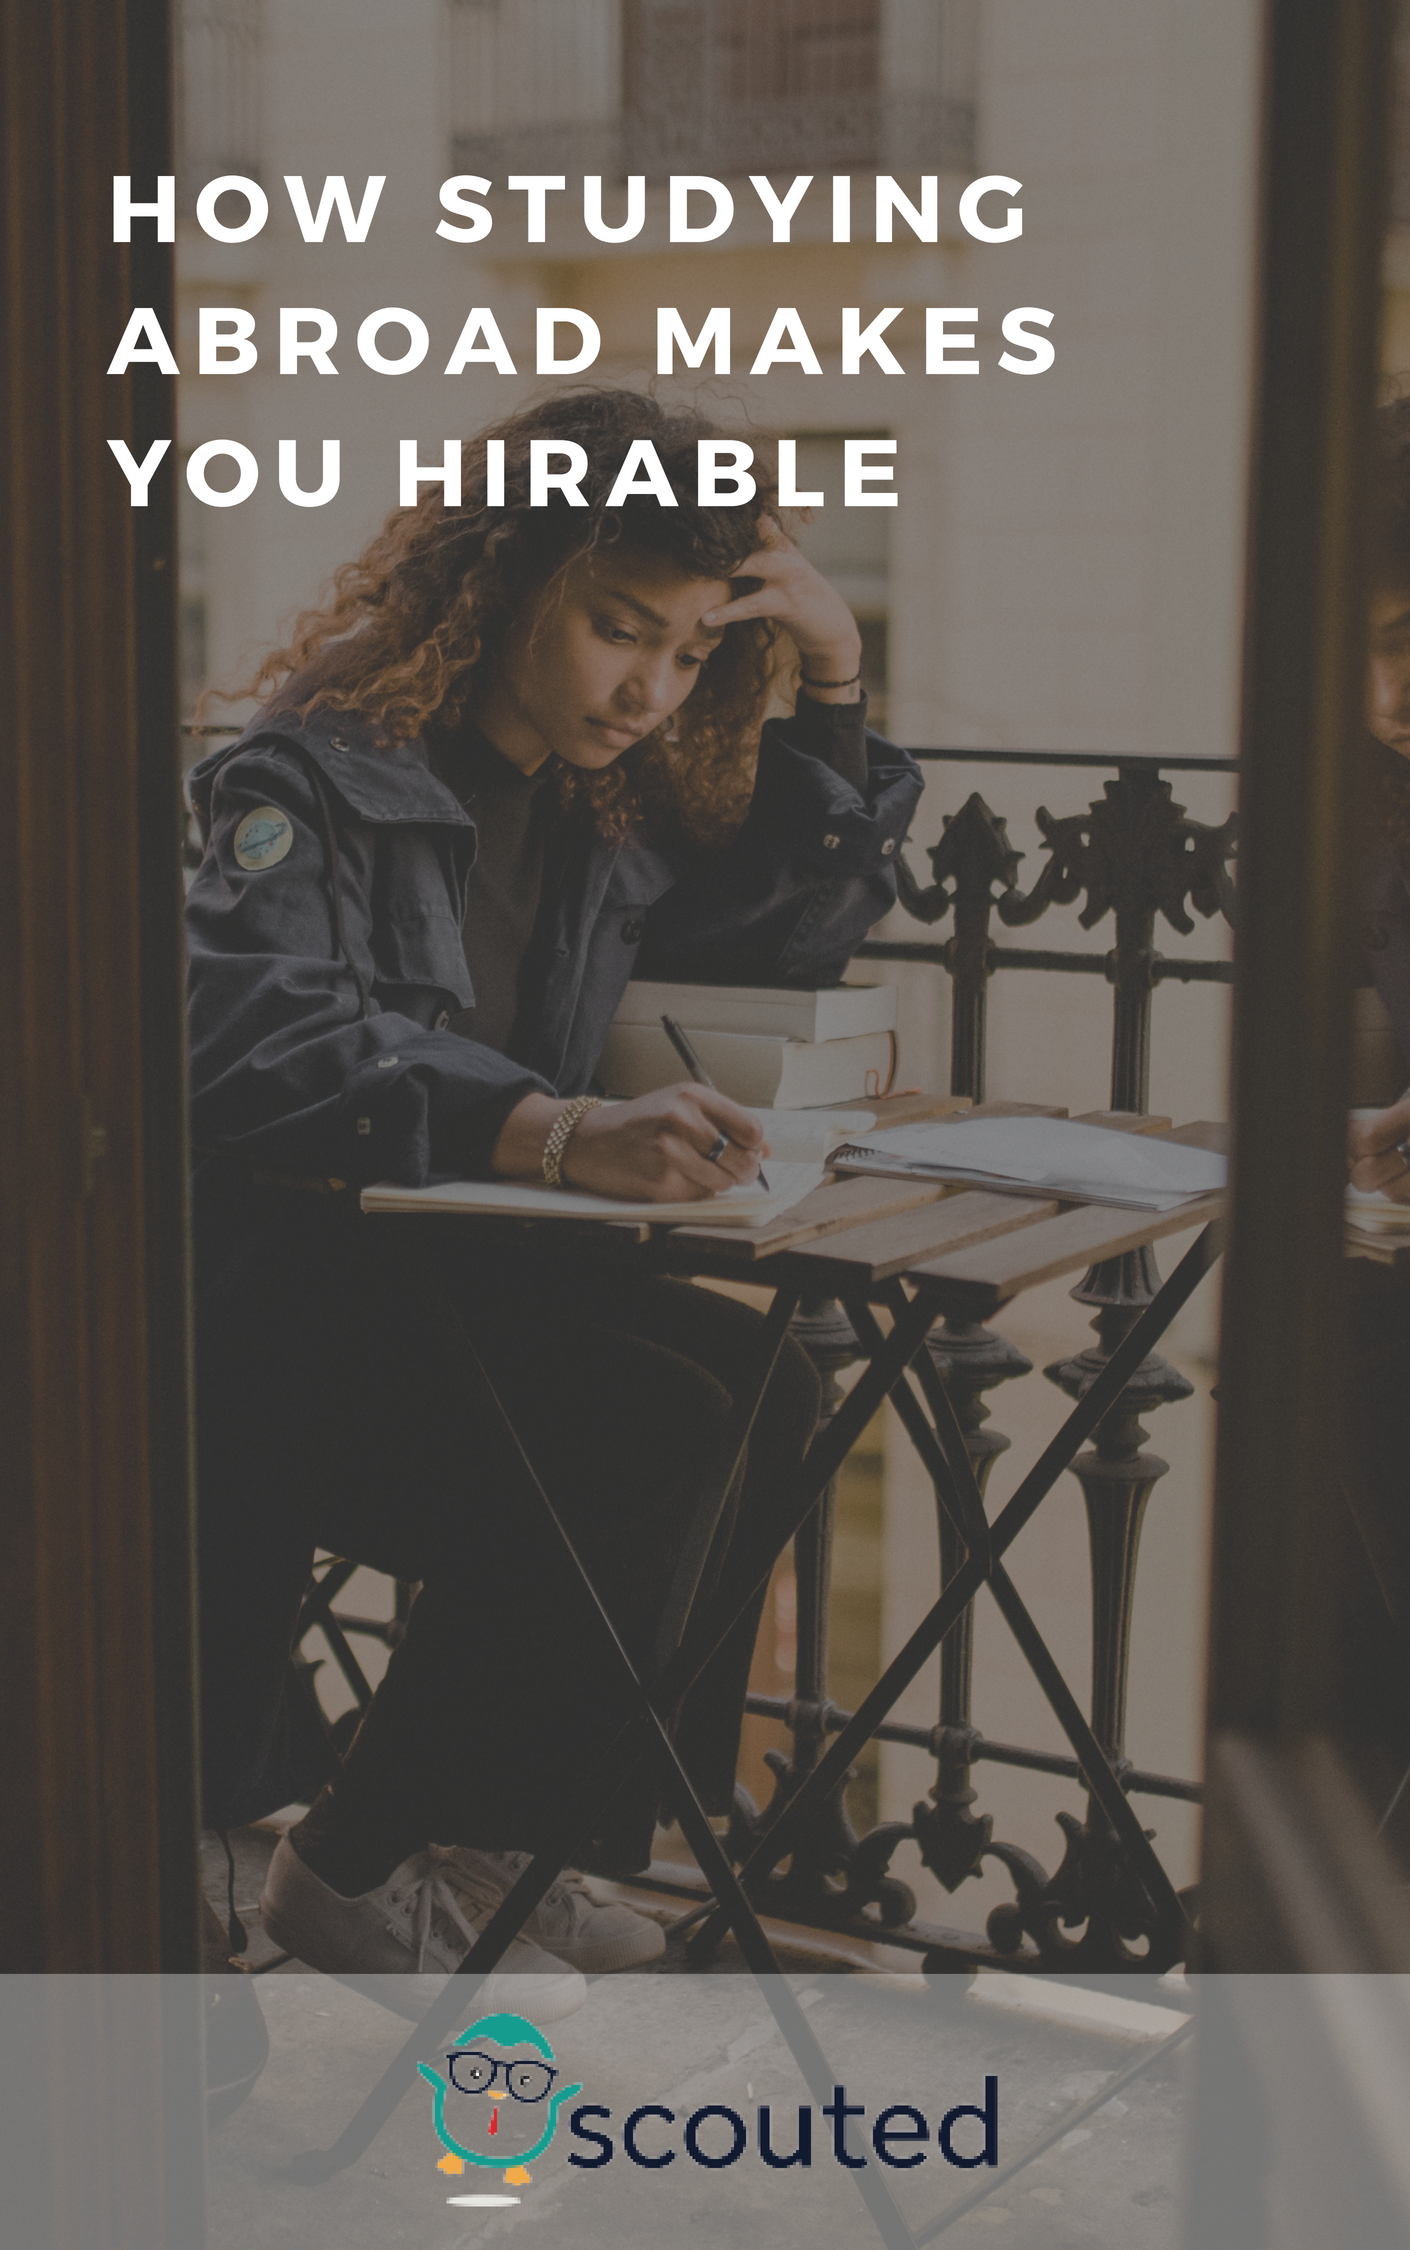 Unlike most things that you likely put on your resume, studying abroad probably isn't something you intentionally realize will make you desirable to employers. The truth is, your employer may not realize it either. It's up to you to reflect on your past experiences and connect them to the tangible skills you have gained.